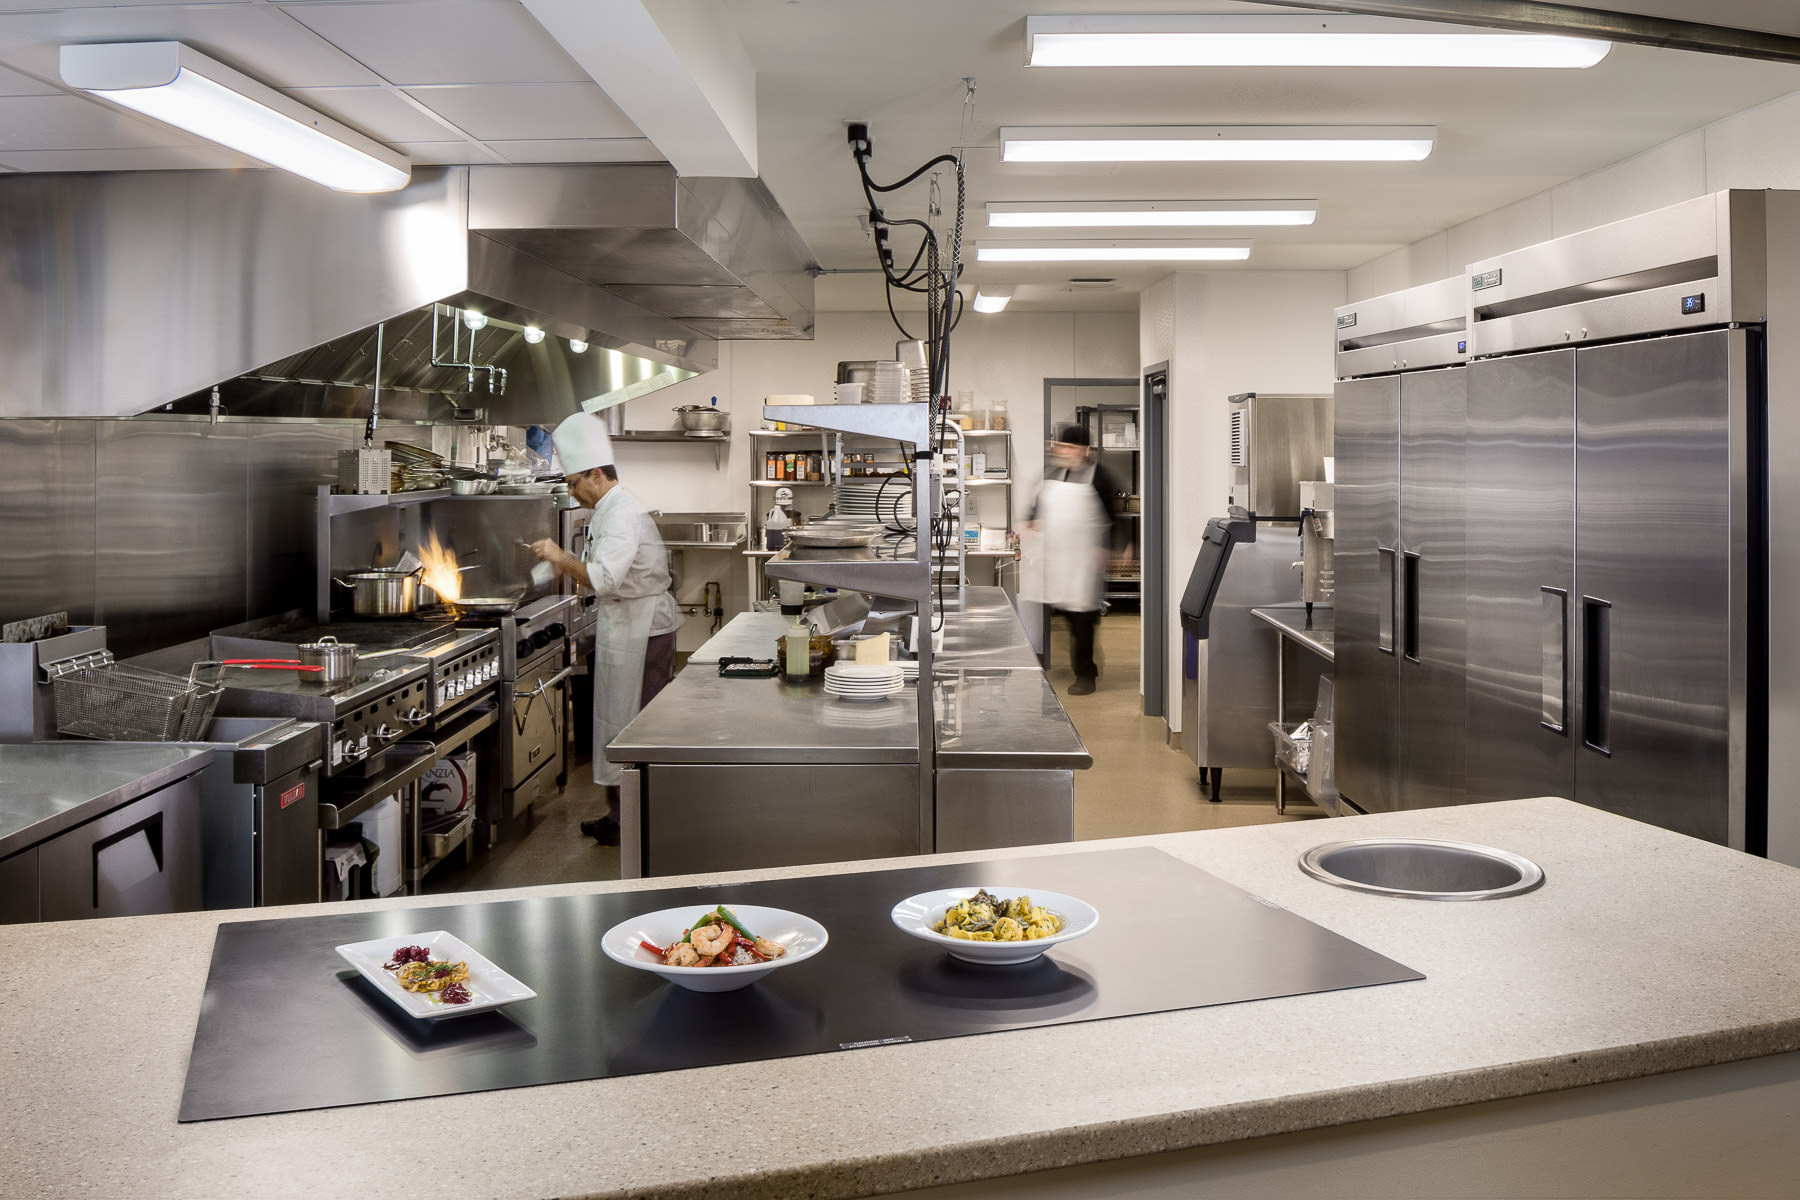 Photo of the full commercial kitchen in the Strode Independent Living Facility in Randolph by Vermont commercial photographer Stina Booth